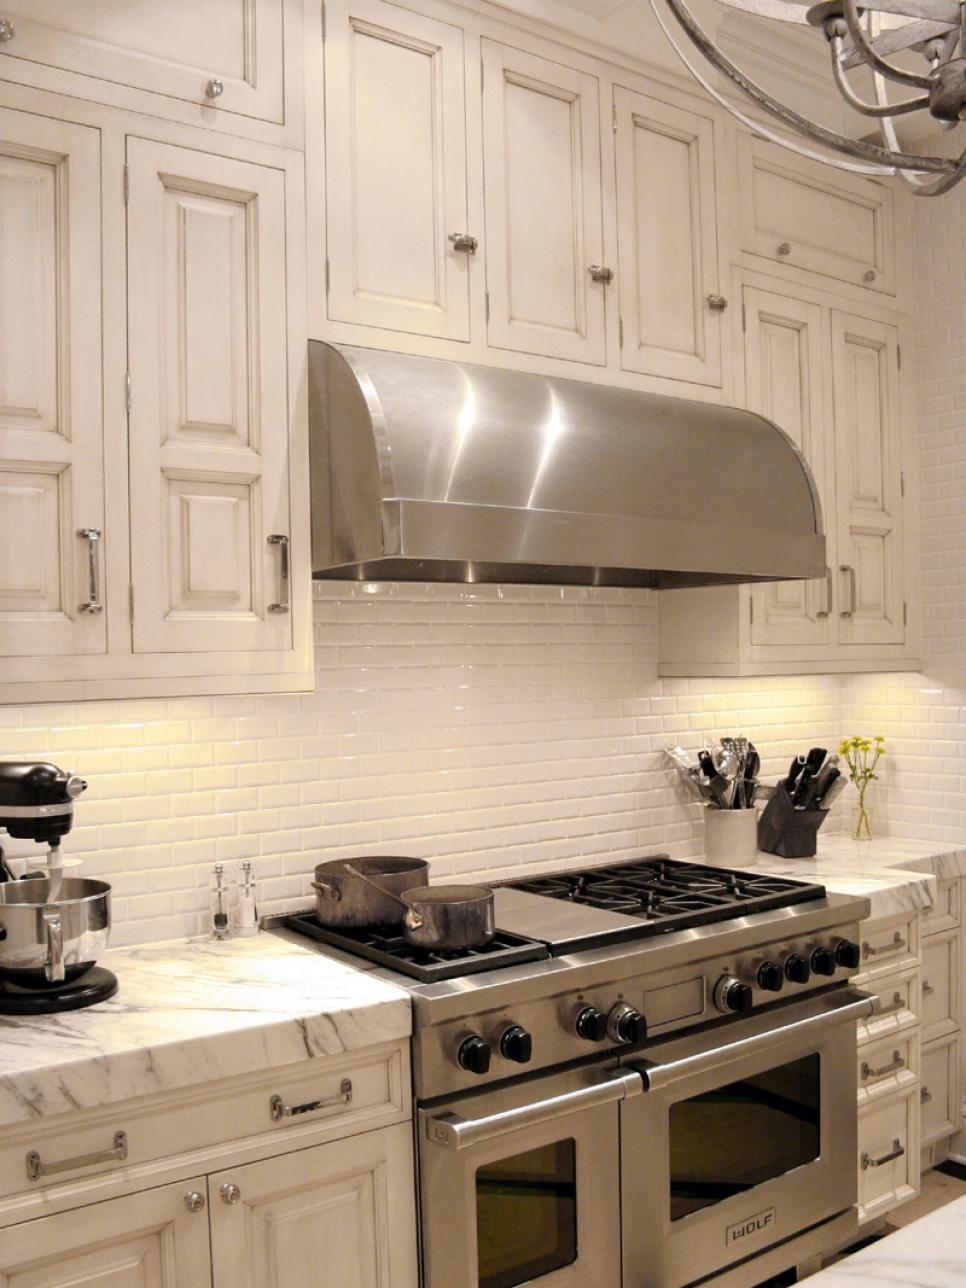 Kitchen Backsplash dreamy kitchen backsplashes | hgtv